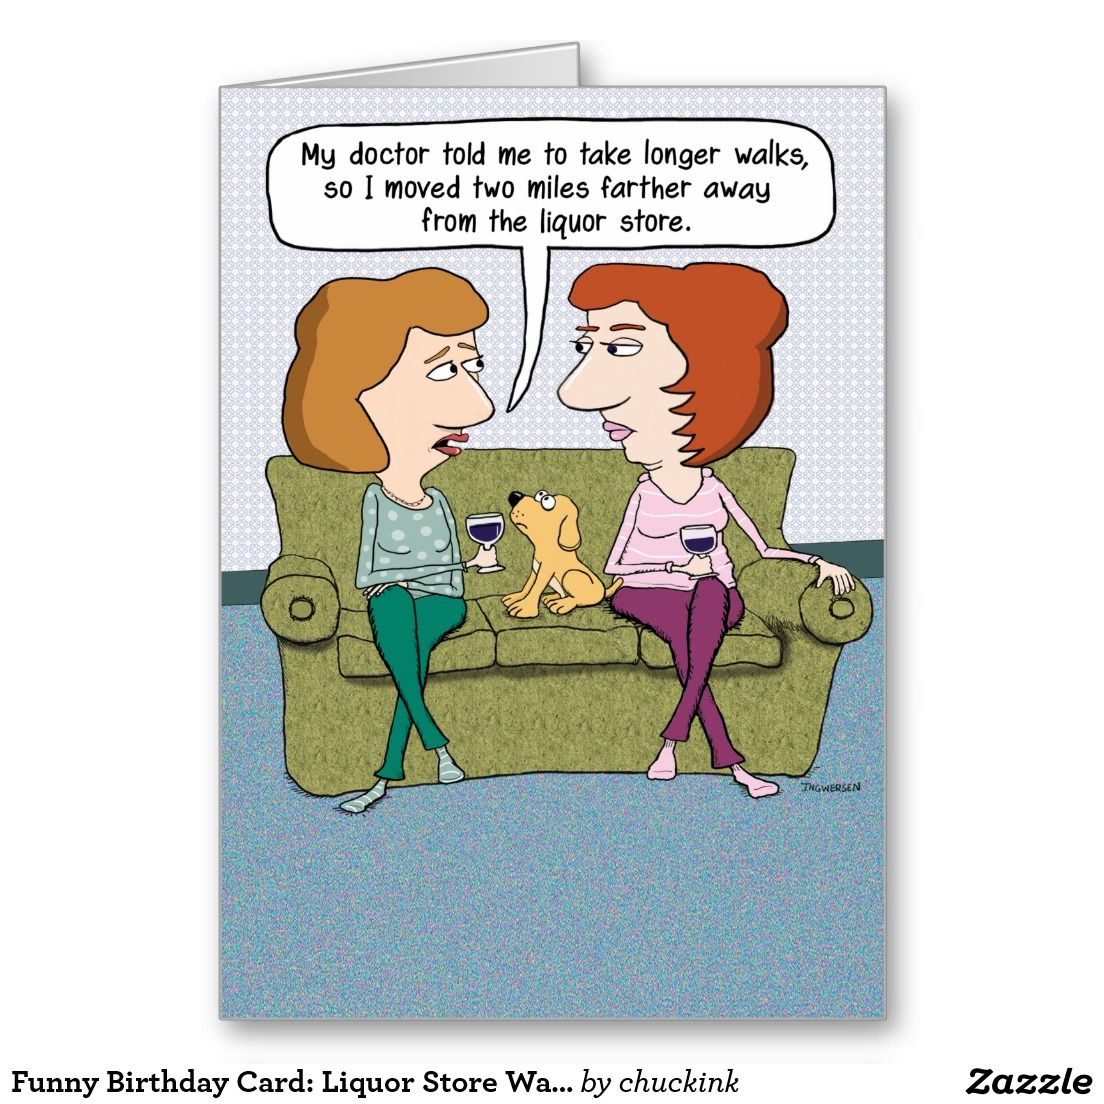 Funny birthday card liquor store walks funny birthday cards funny birthday card liquor store walks kristyandbryce Images